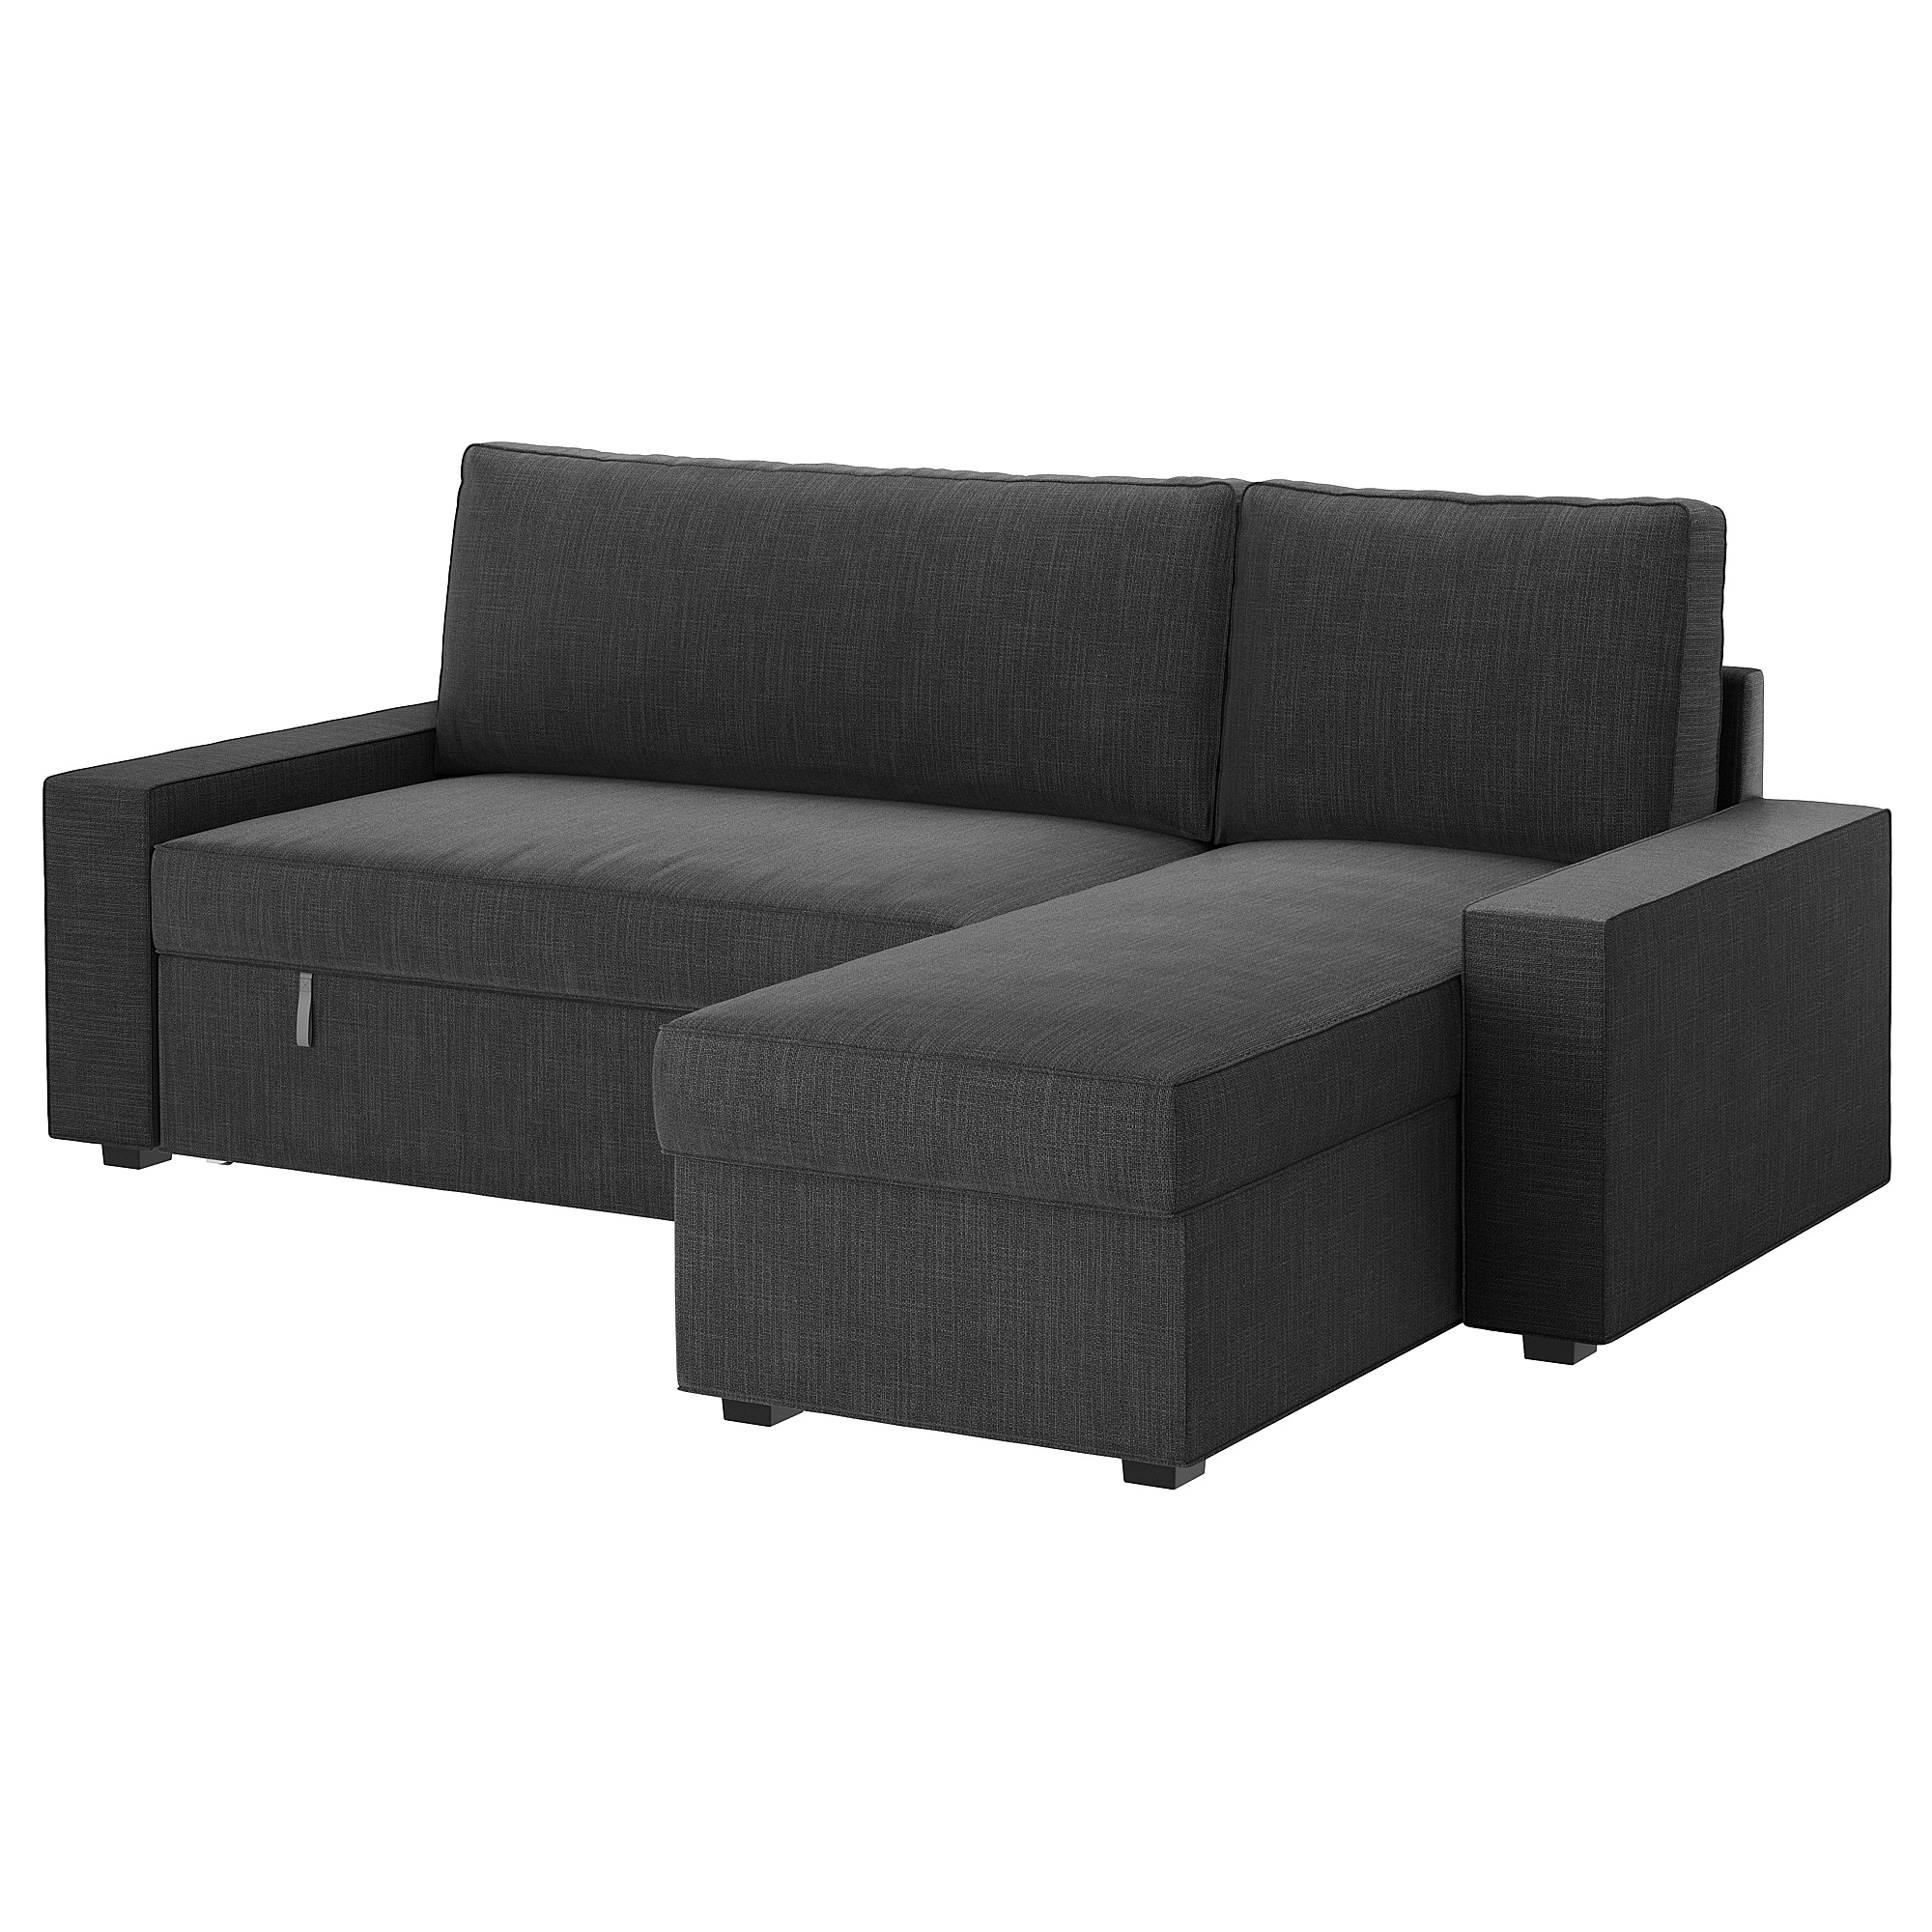 schlafsofa ikea. Black Bedroom Furniture Sets. Home Design Ideas